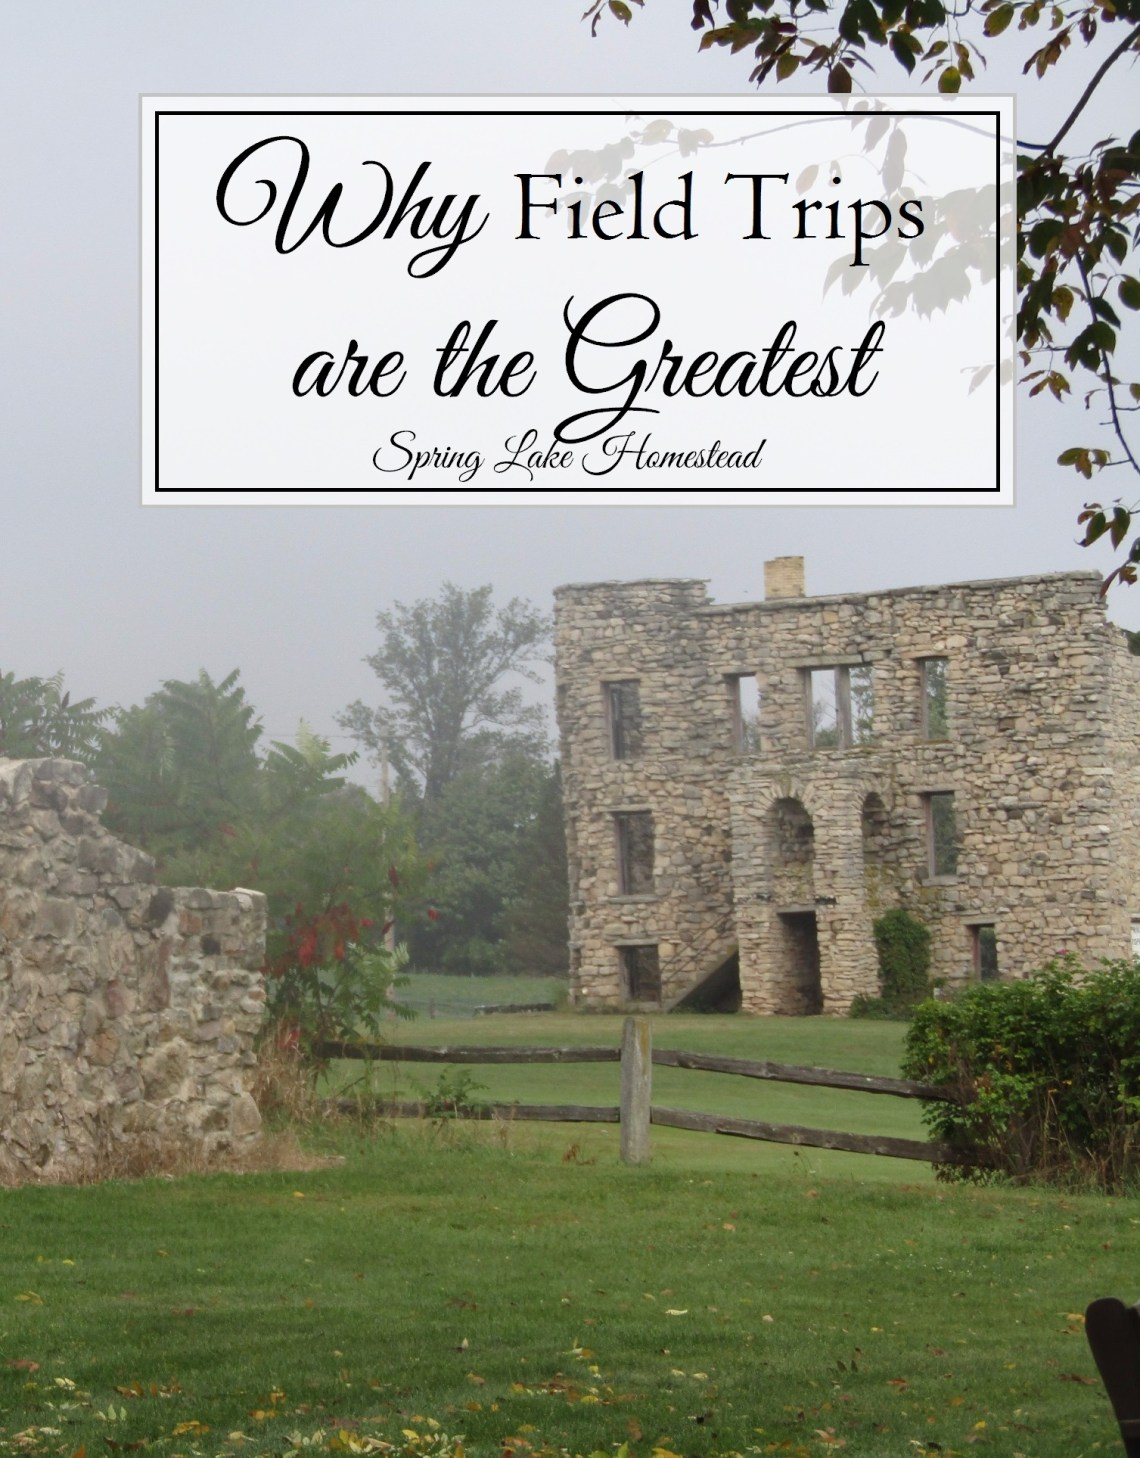 Why Field Trips are the Greatest